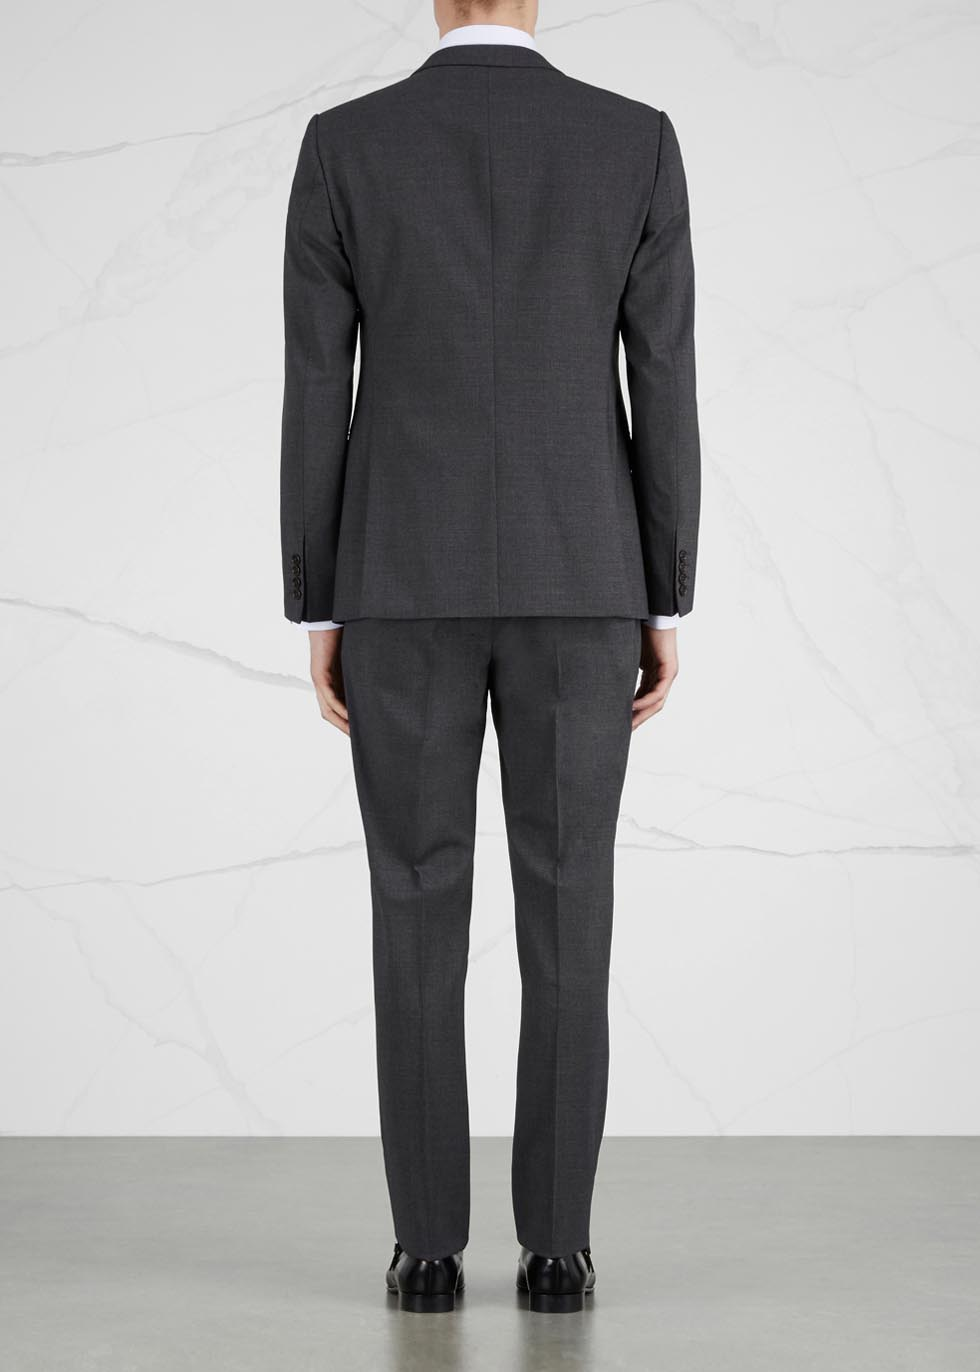 M-Line charcoal stretch wool suit - Emporio Armani